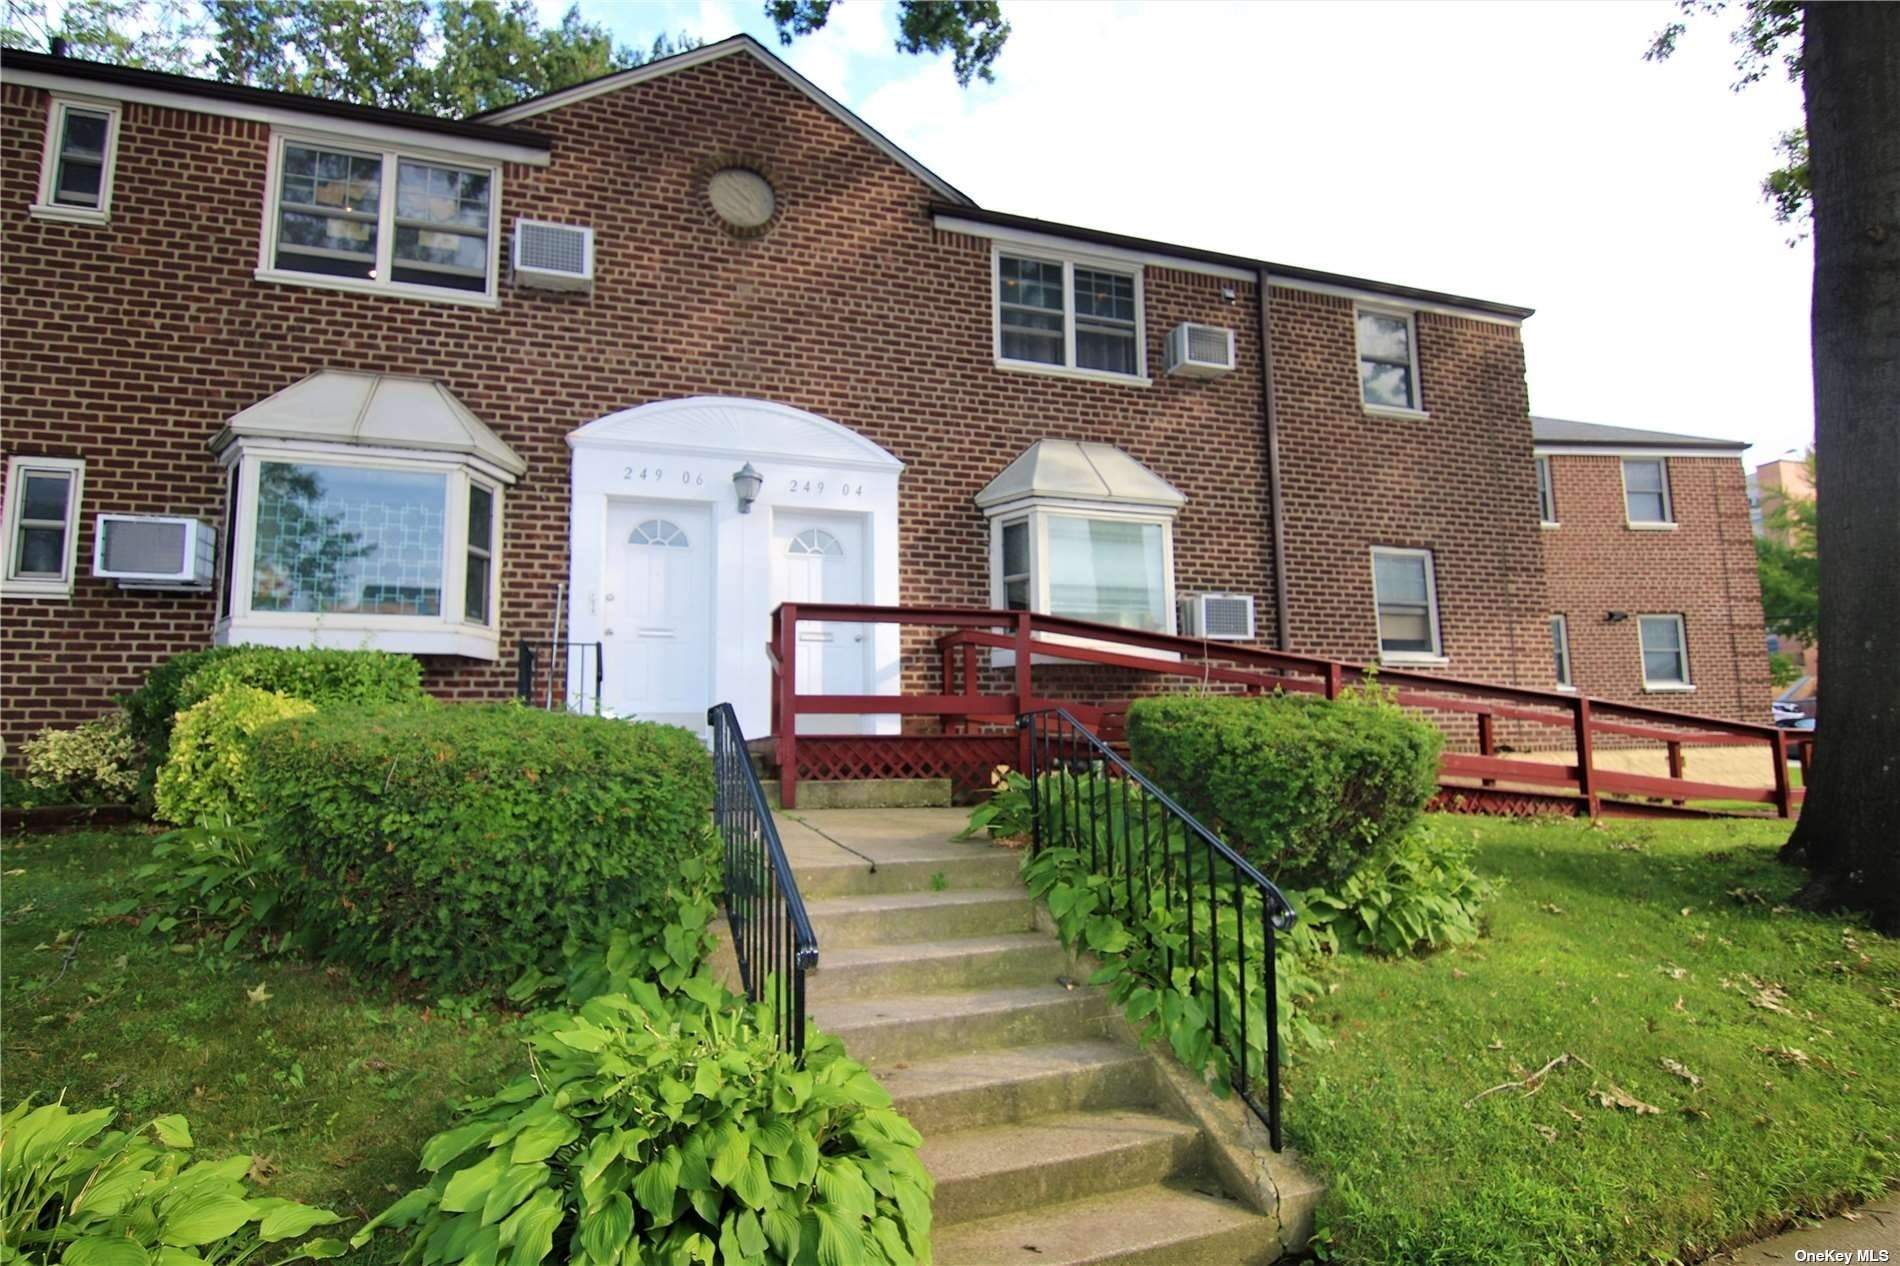 Great location! Deepdale Gardens corner unit with 3 bedrooms and 1 full bath. Fixer upper - chance to design your ideal home. Conveniently located near all shopping, library, schools, and other amenities.